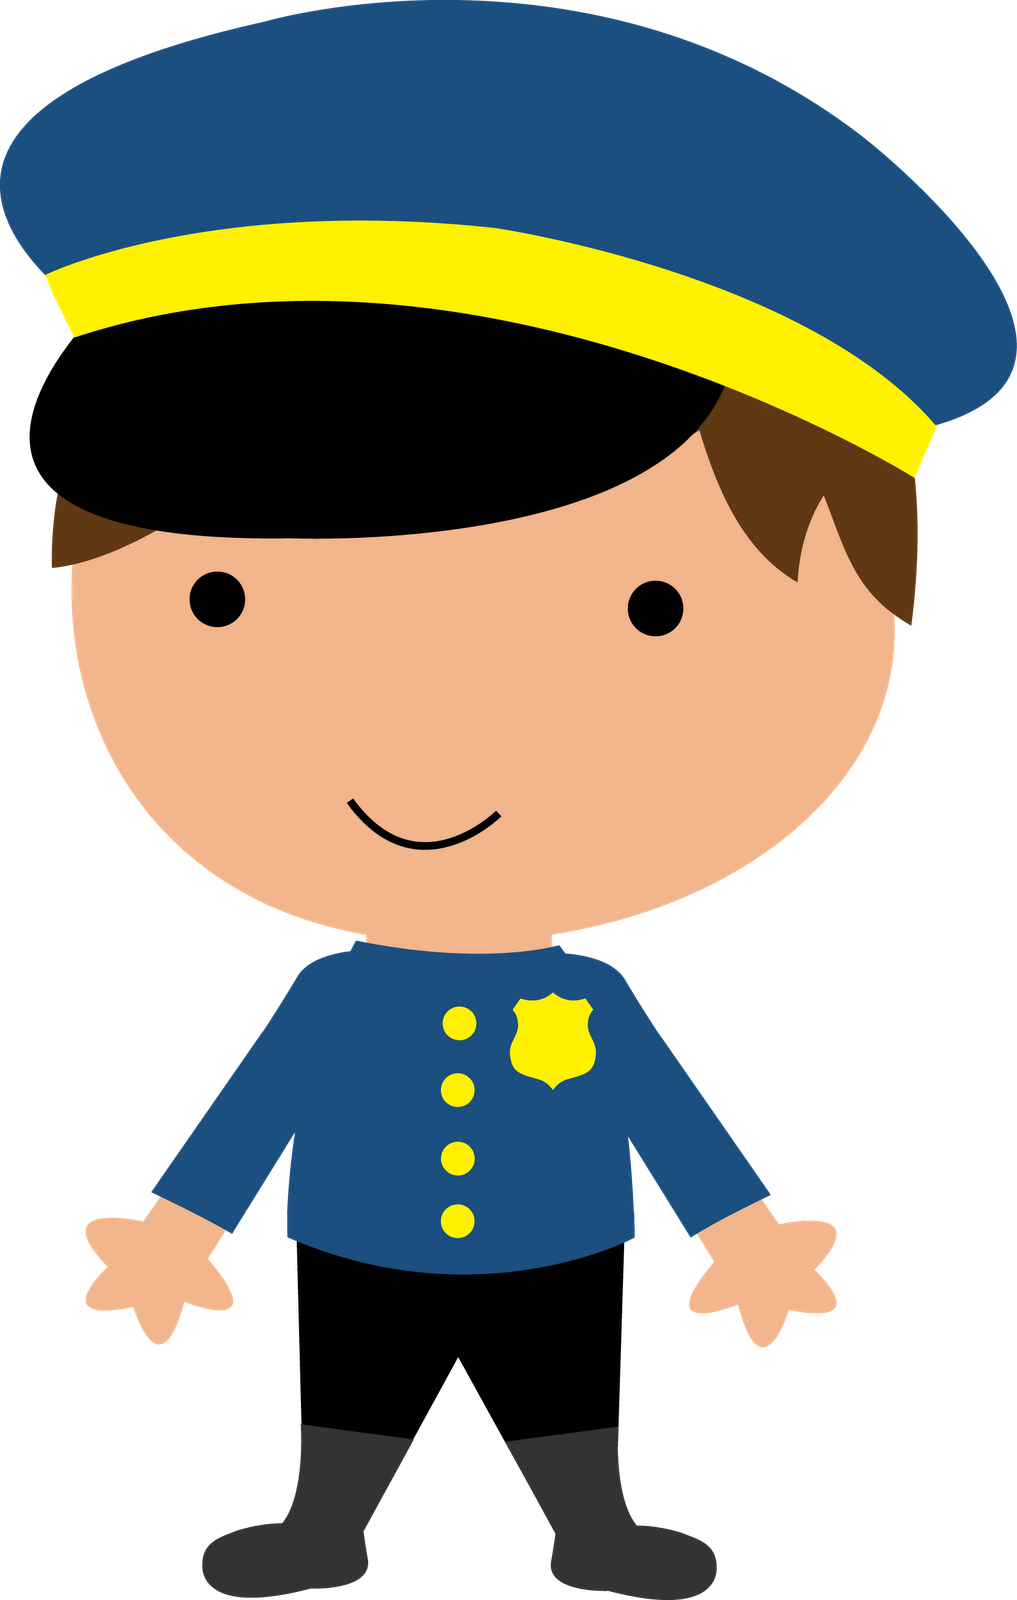 Policeman theme workers and. Librarian clipart community helper